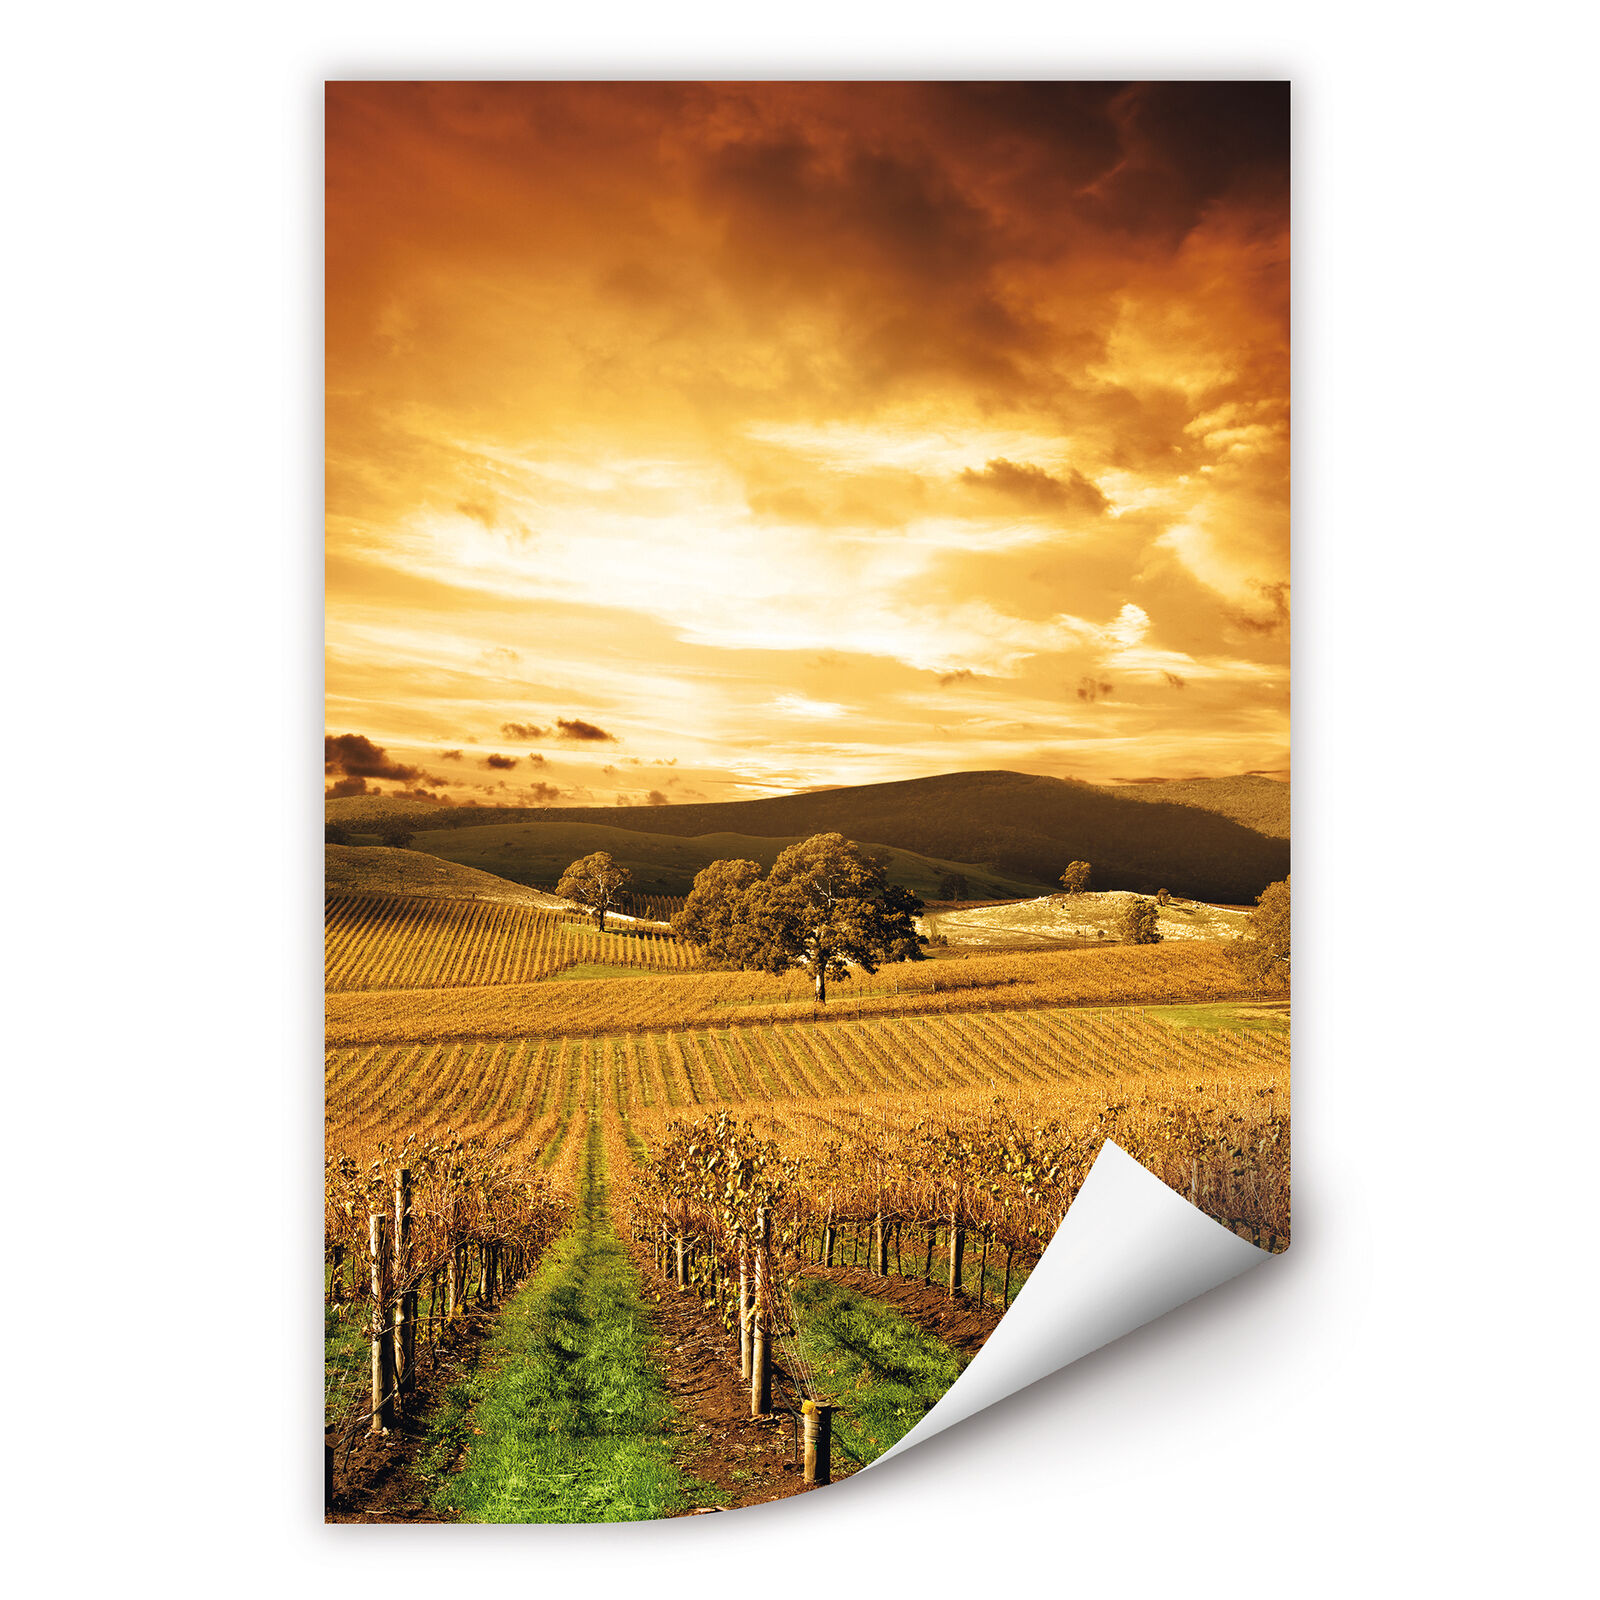 Wallprint Wallprint W - Tirol im Herbst Orange